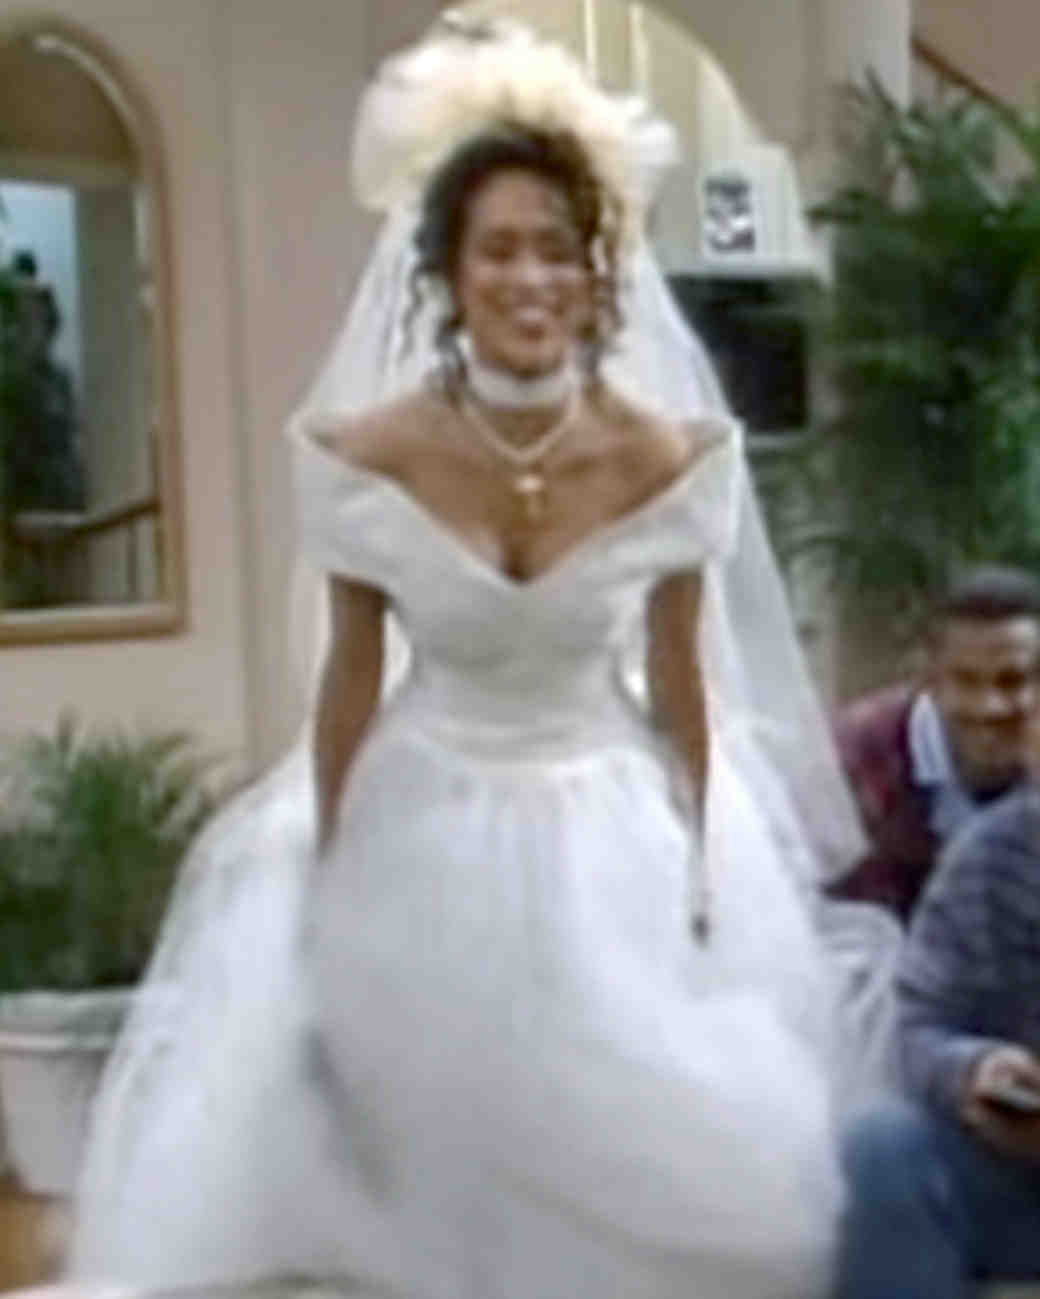 tv-wedding-dresses-fresh-prince-of-bel-air-hilary-banks-1115.jpg